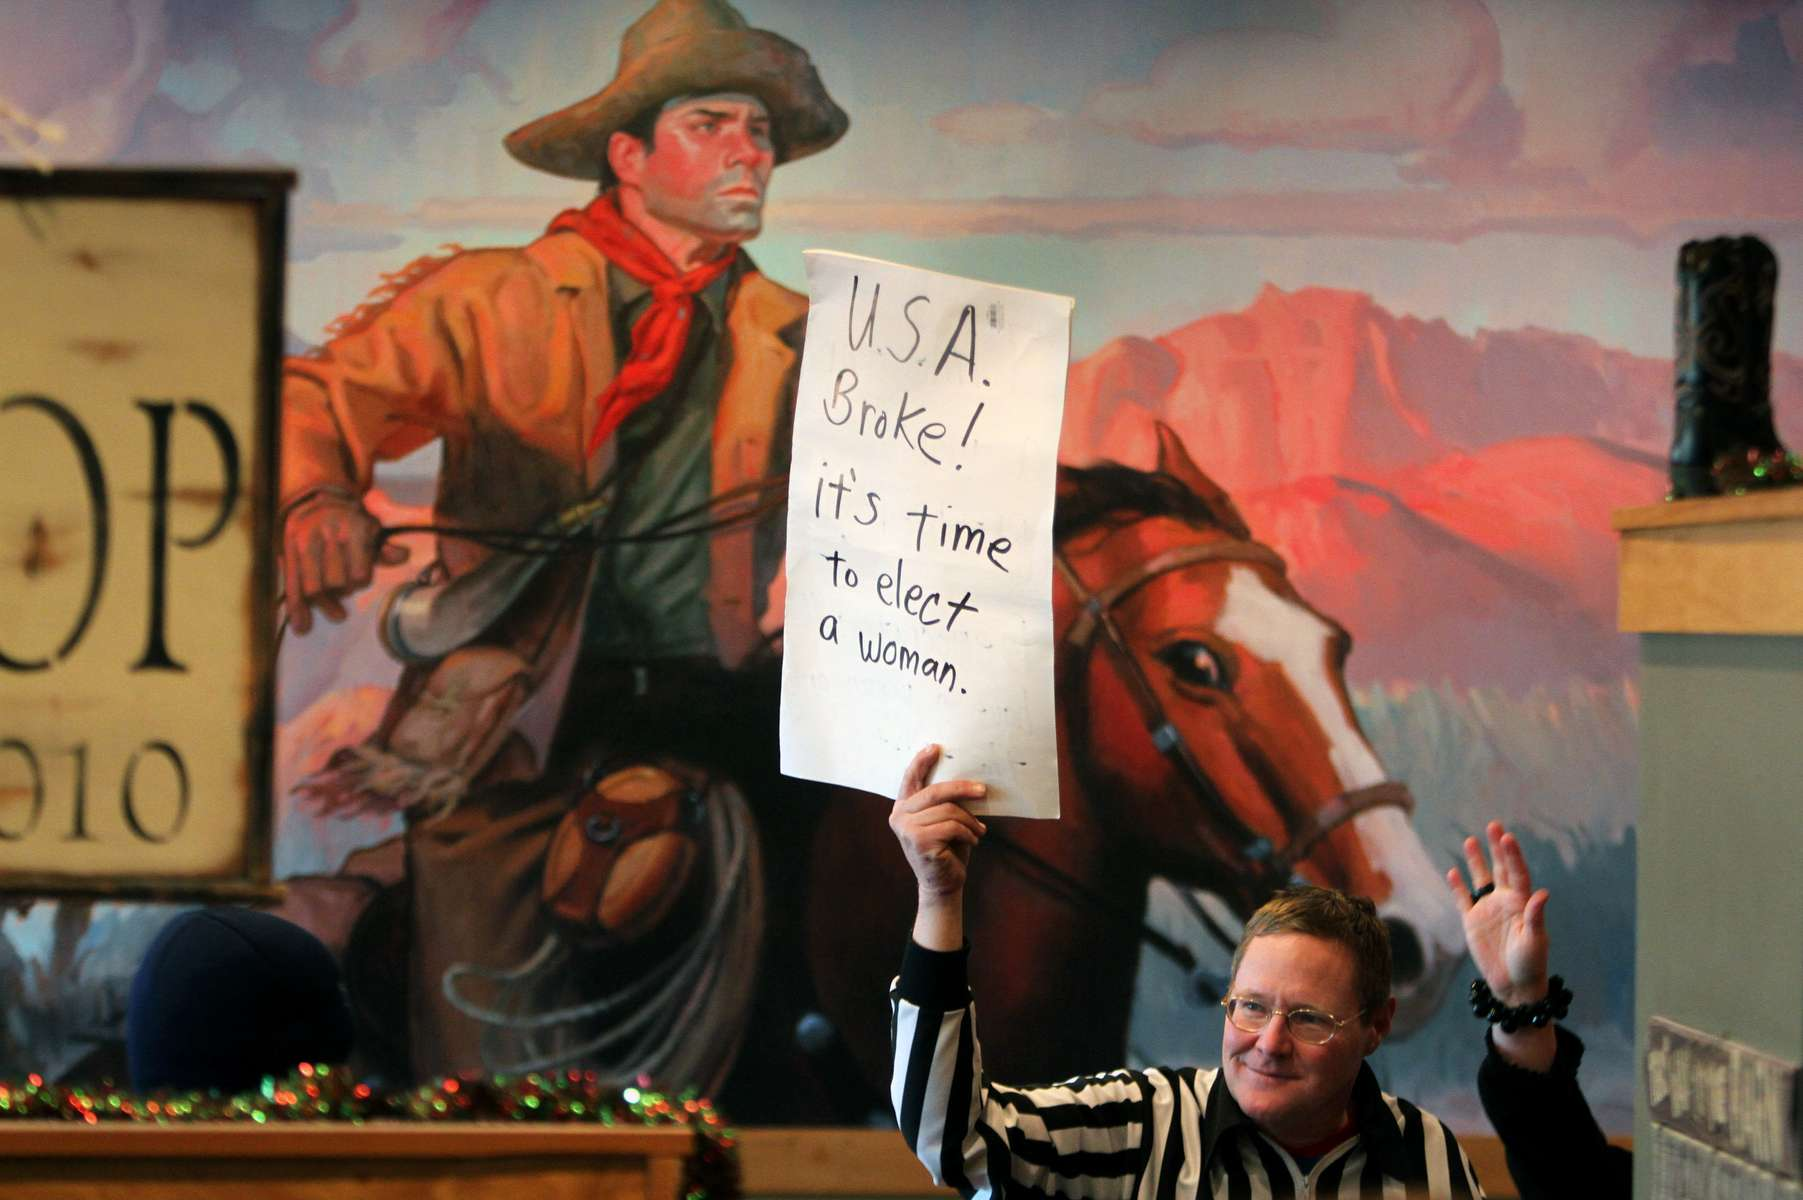 Edward Lewis of Council Bluffs, Iowa, shows his support for Republican presidential candidate Michele Bachmann at Pizza Ranch in Indianola, Iowa.